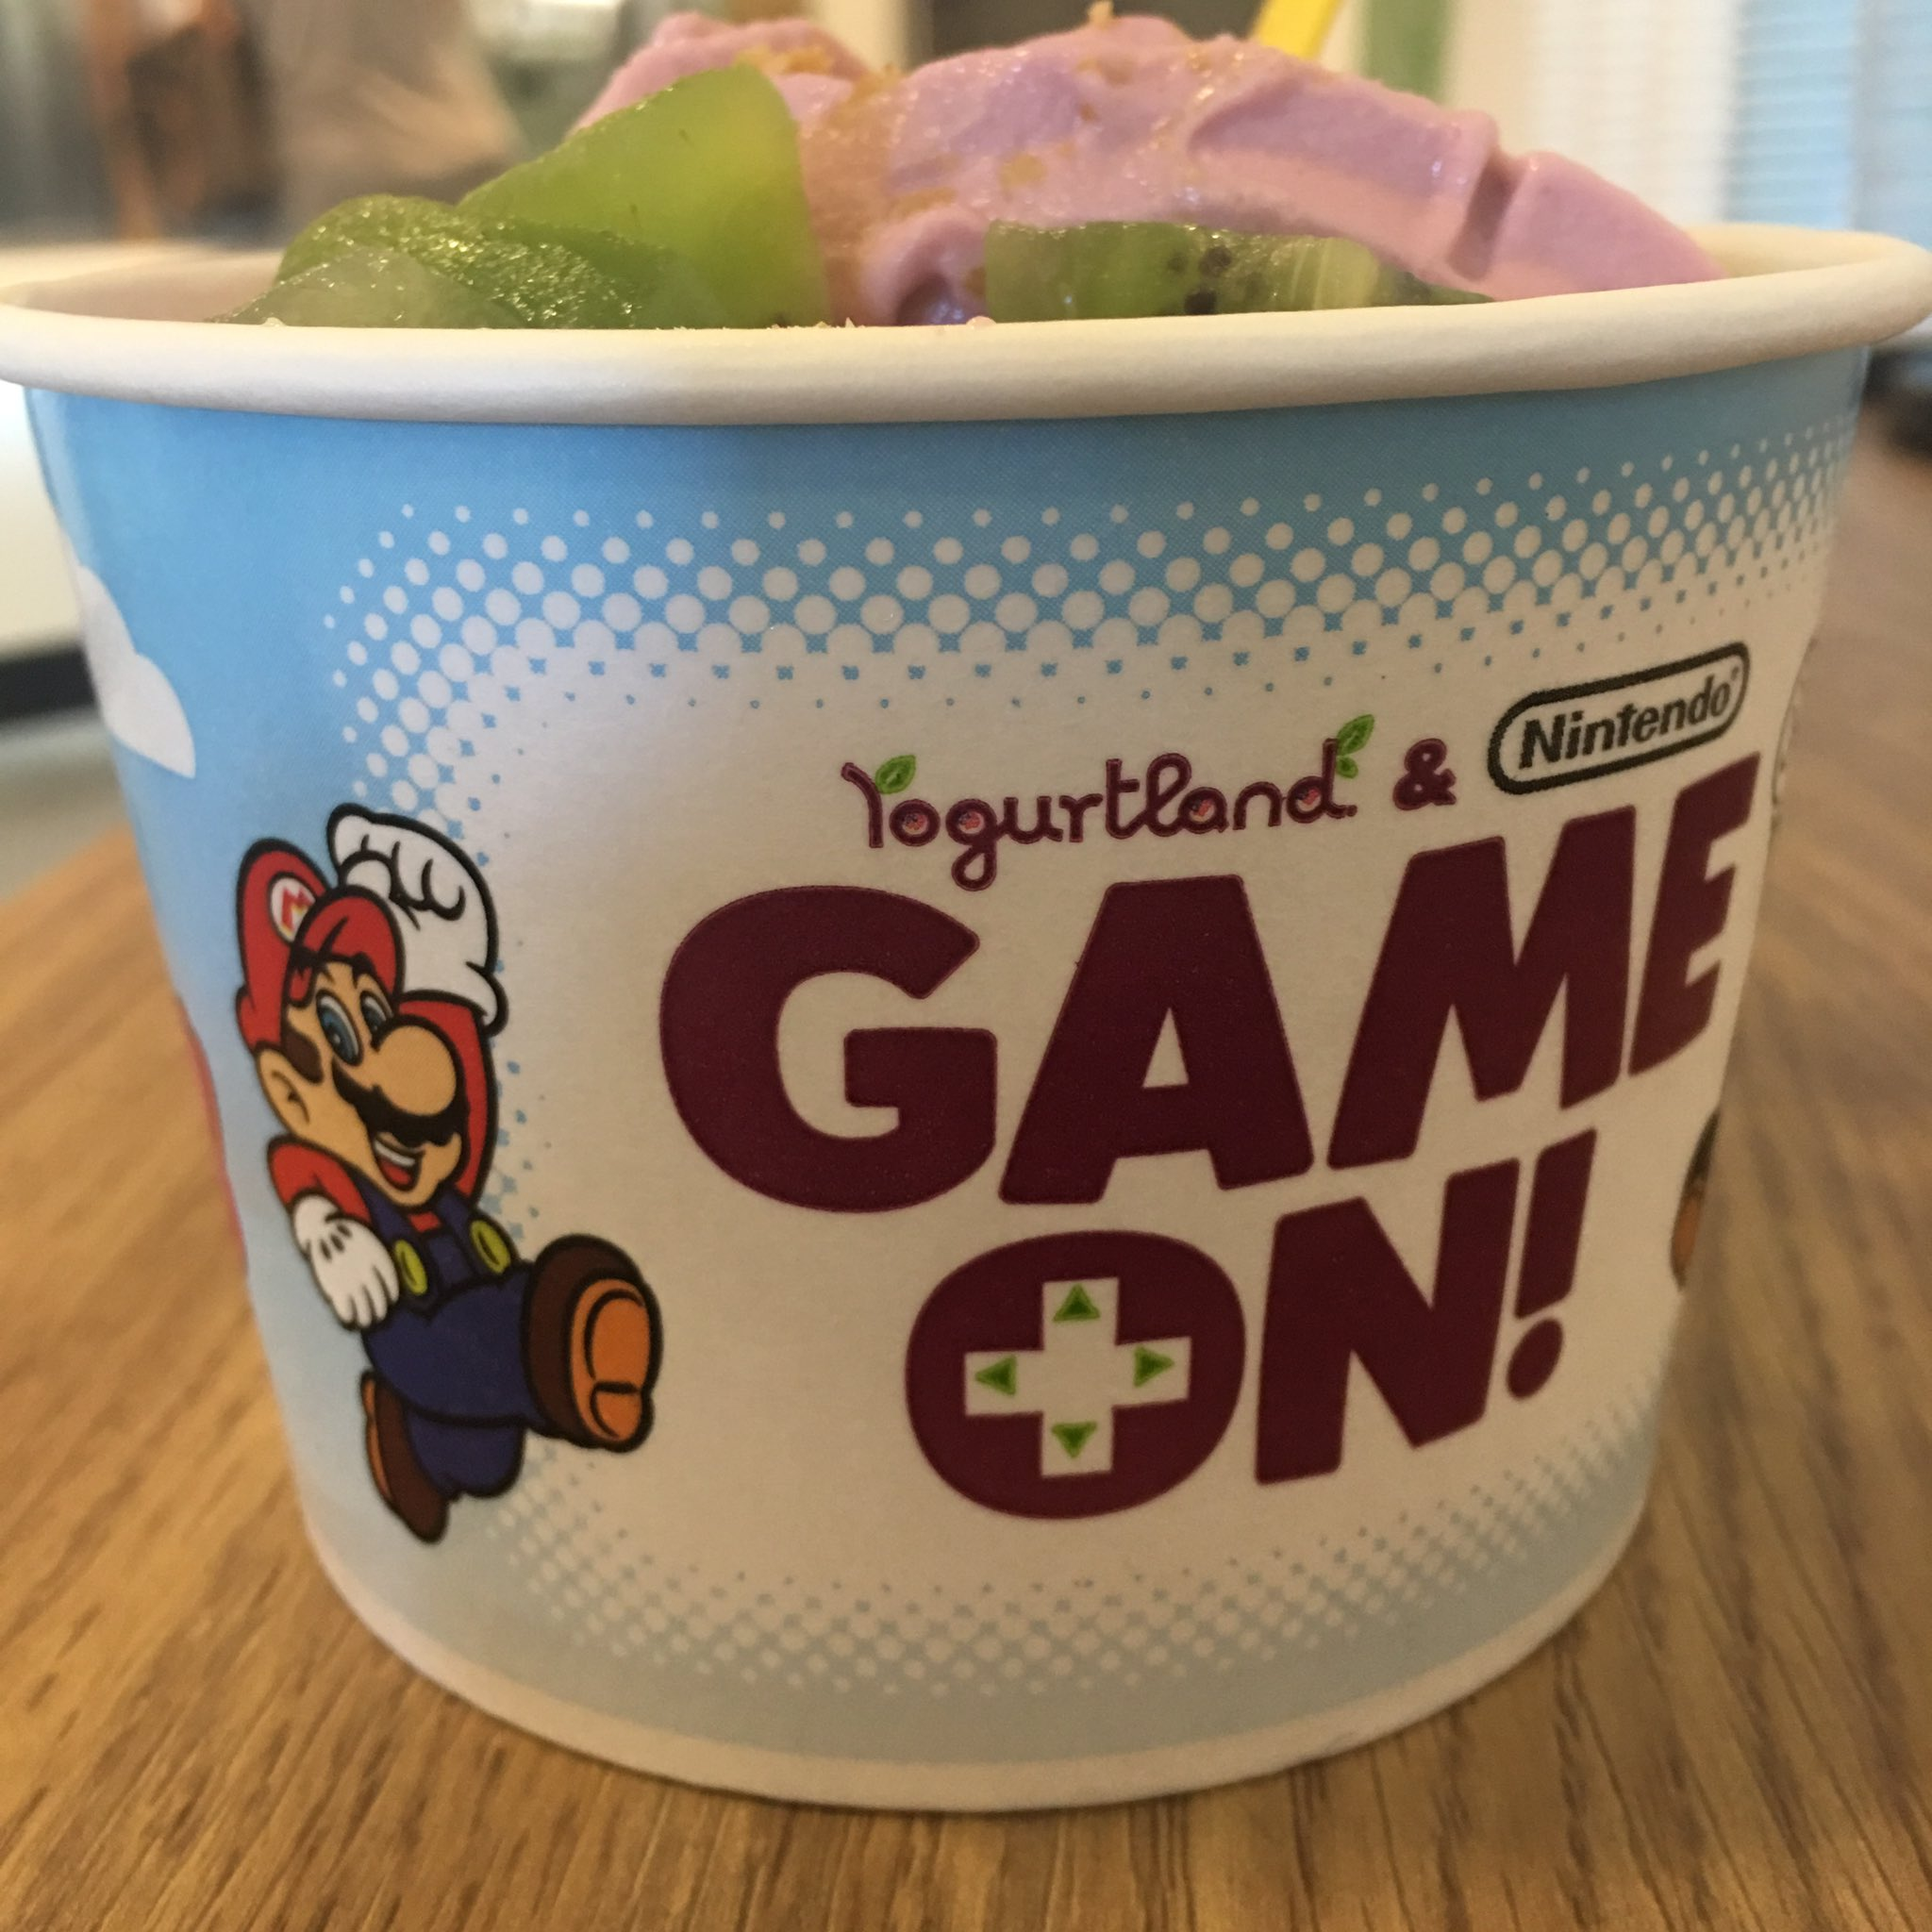 Y'all know I had to get some of this @NintendoAmerica yogurt. Princess tryna get some yoshi D #andistillgetnolove https://t.co/Z7U66Gv7if